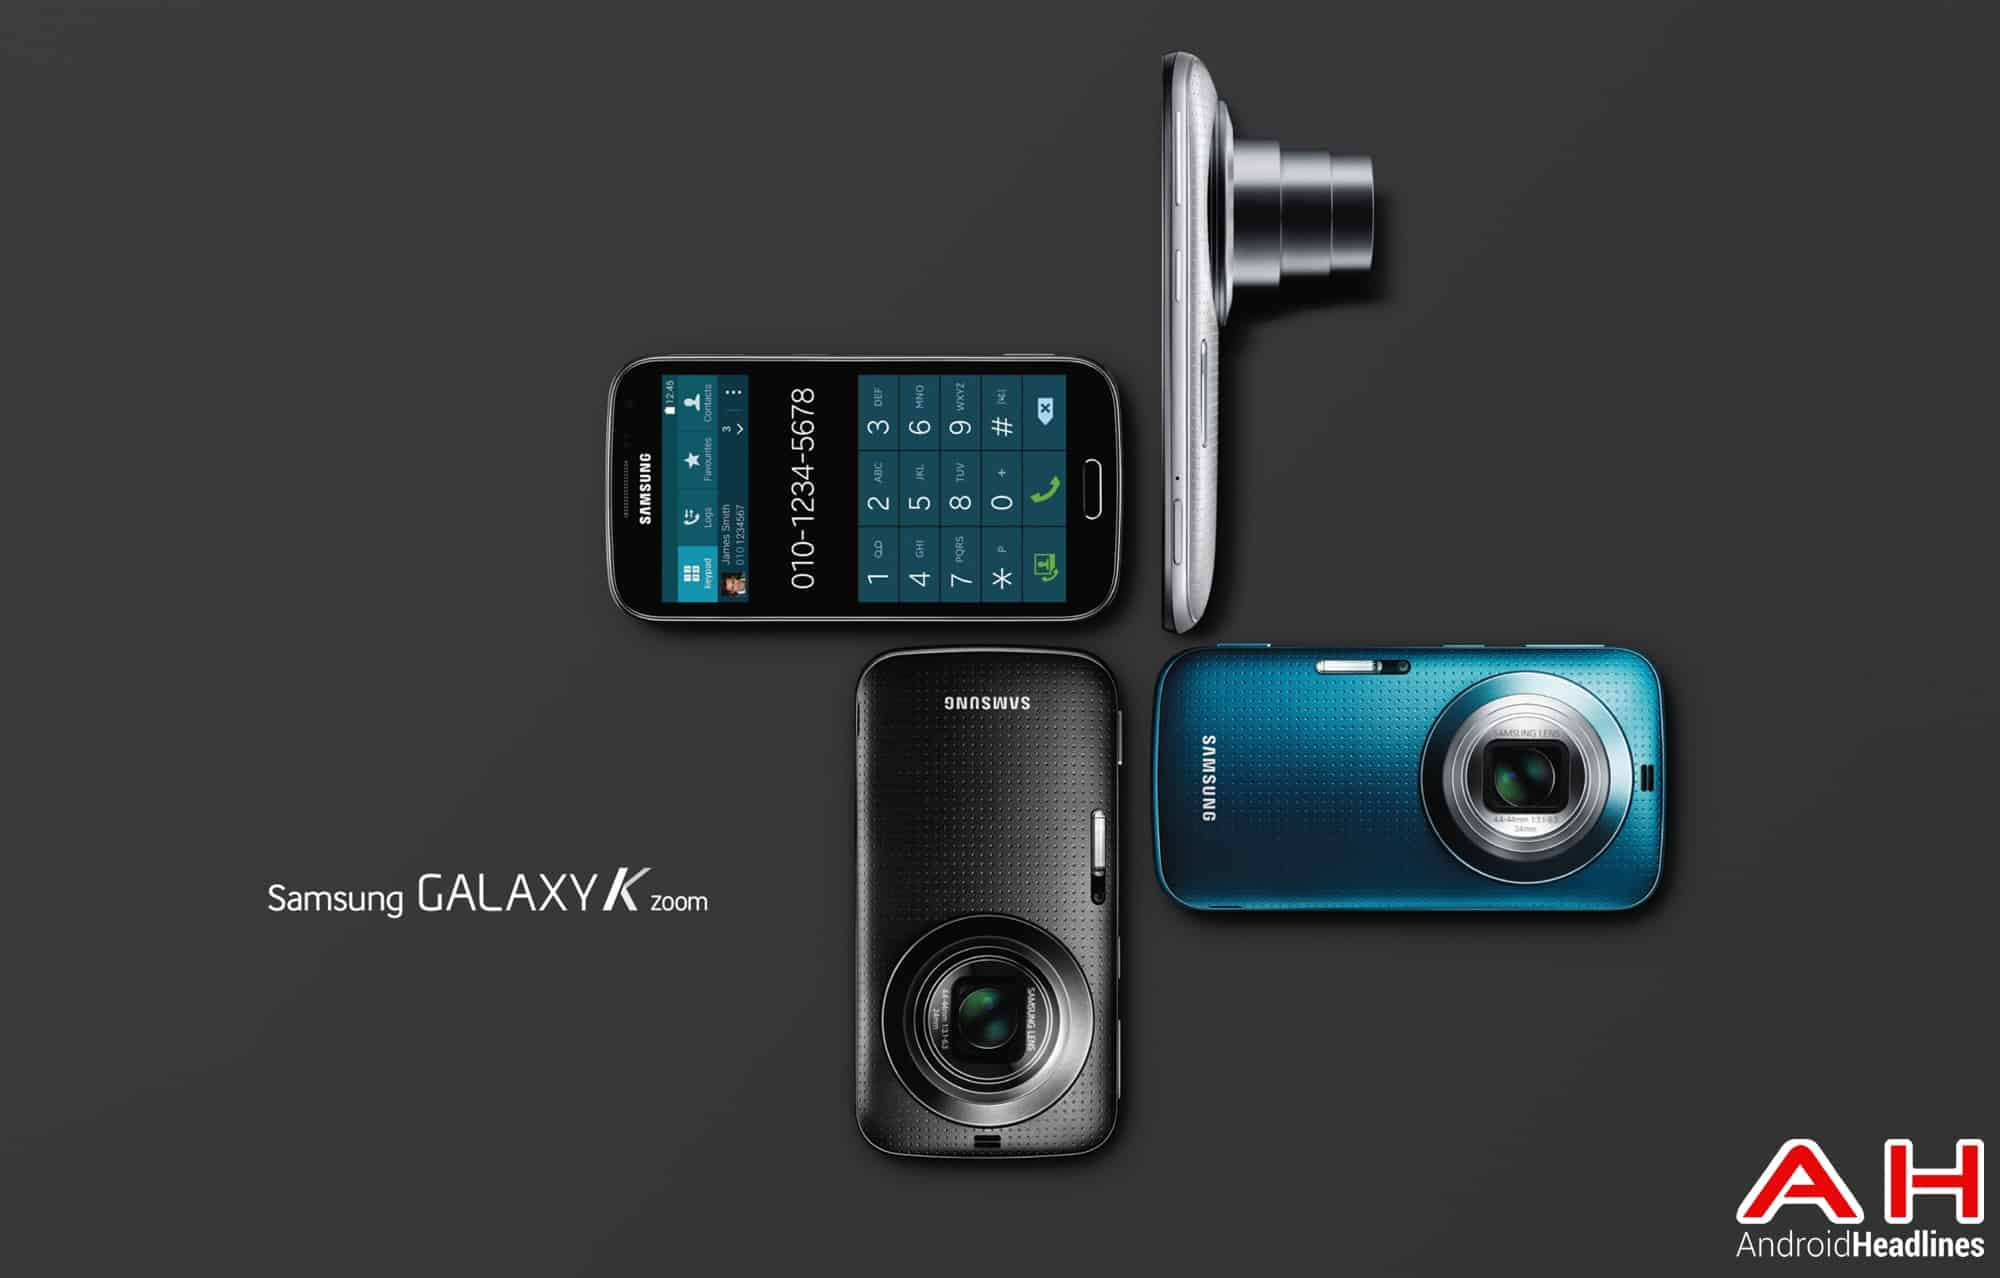 Galaxy K zoom 3 colors